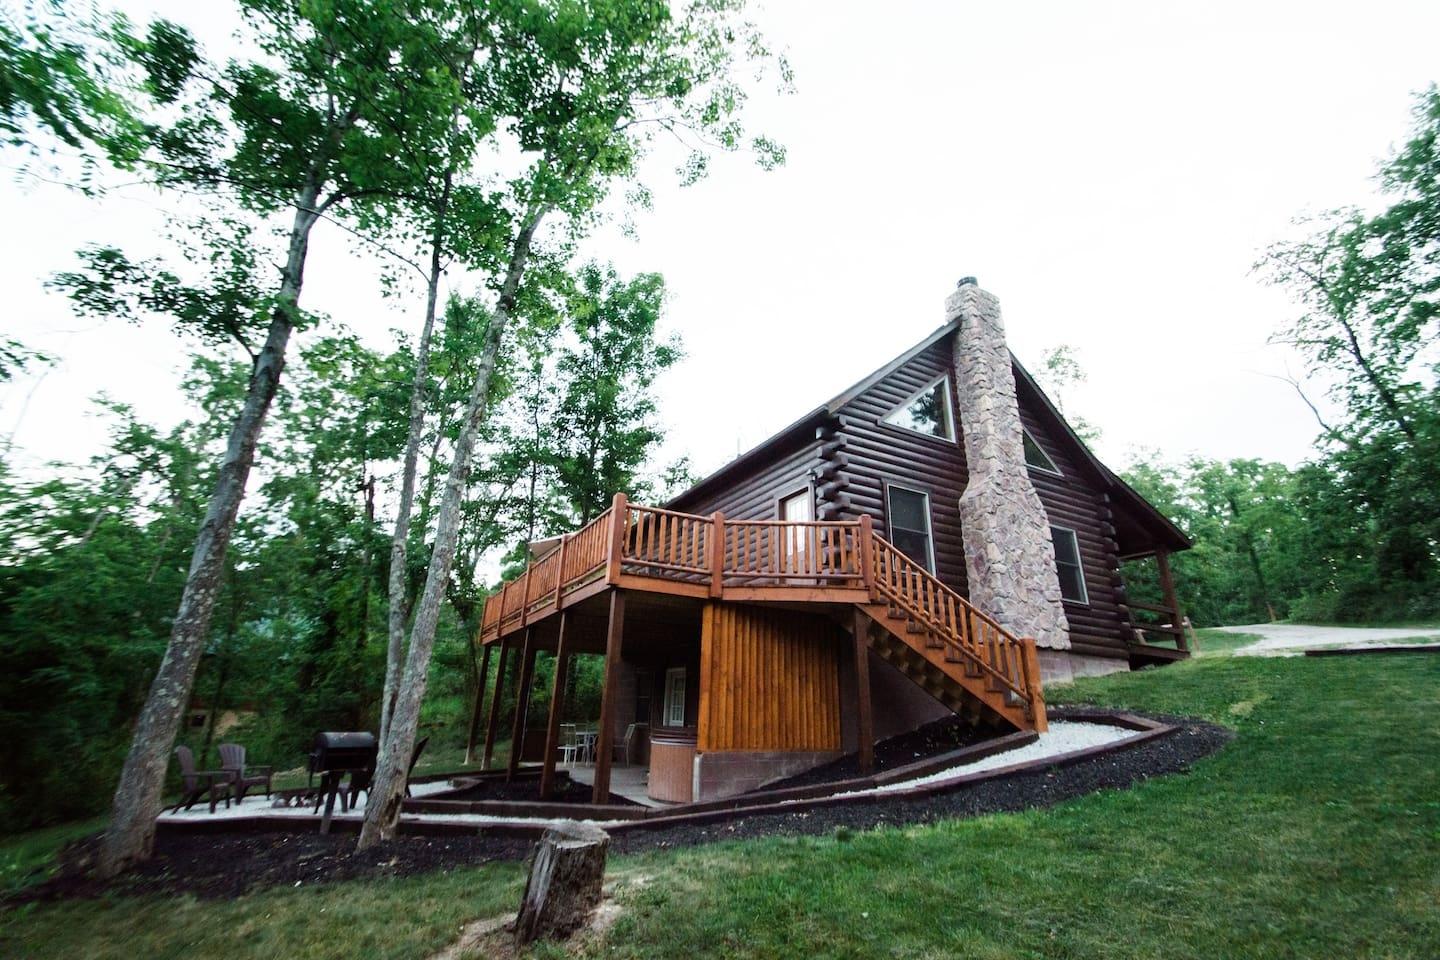 deck logan cottage upper rental cabin cove in ohio of log hocking heron view team rentals lake cabins hills